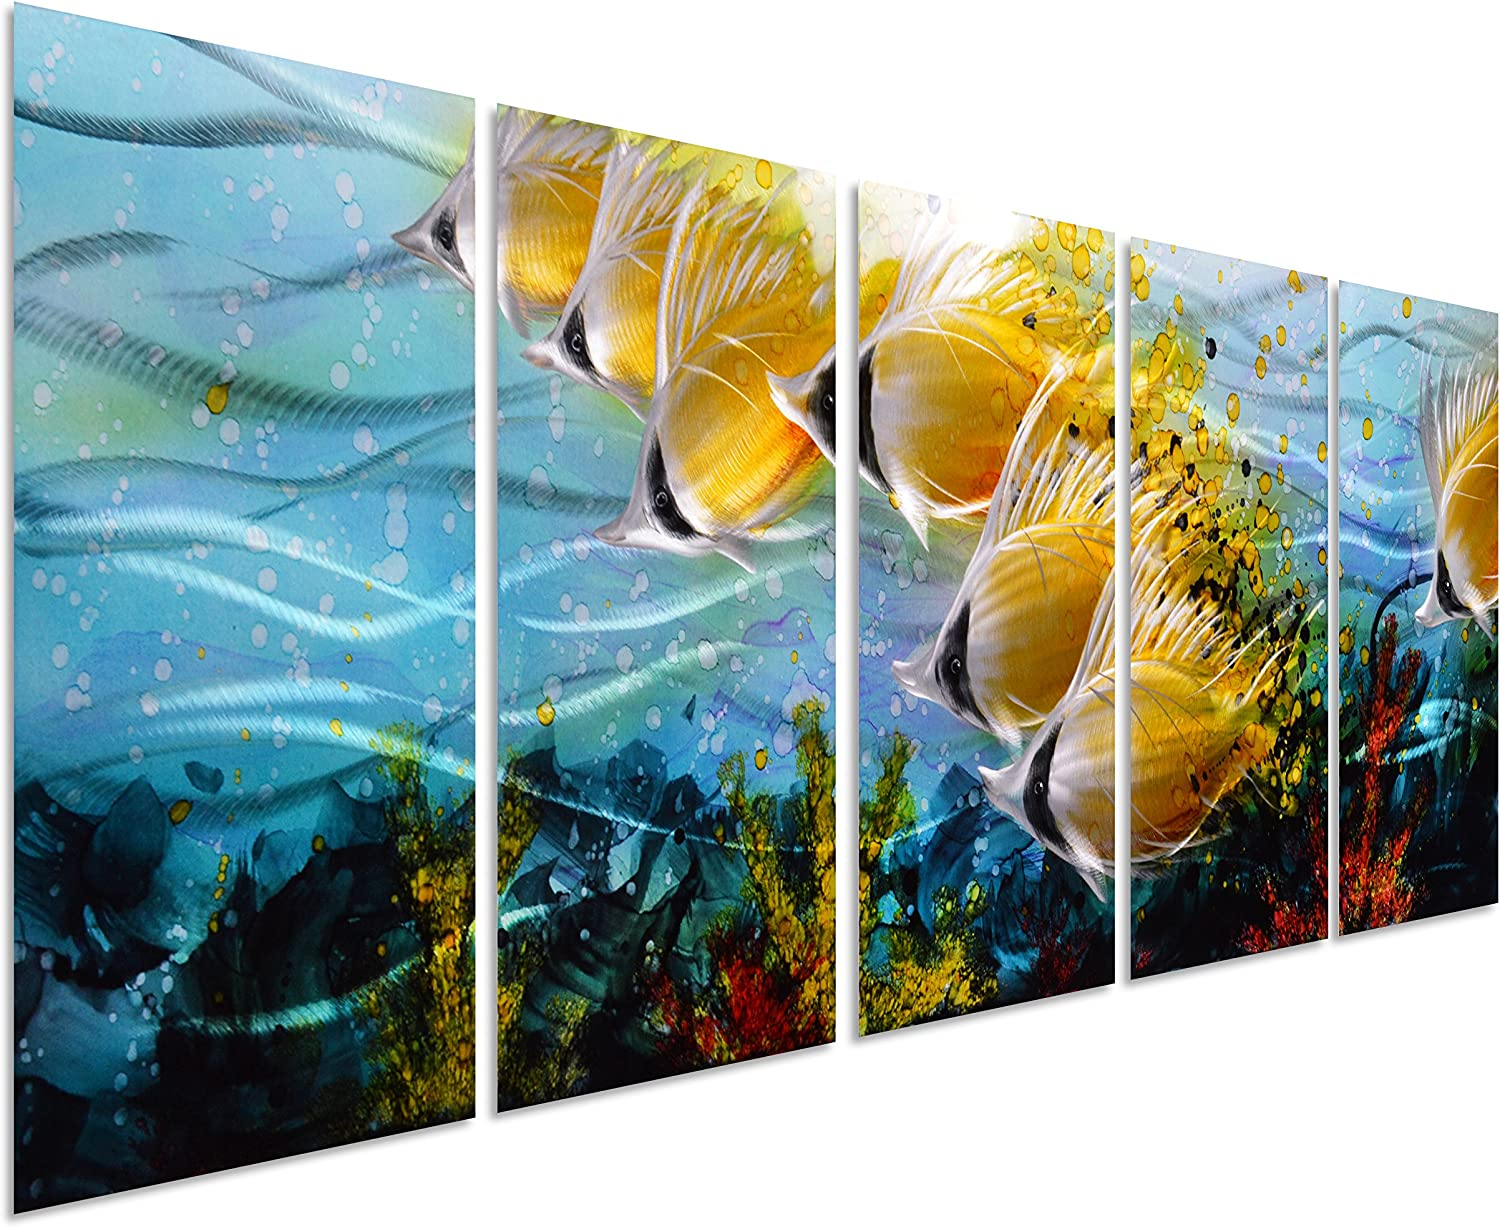 """Blue Tropical School of Fish Metal Wall Art, Large Metal Wall Art in Modern Ocean Design, 3D Wall Art for Modern and Contemporary Décor, 5-Panels, 24""""x 64"""", Metal Wall Décor Works Indoors and Outdoors"""